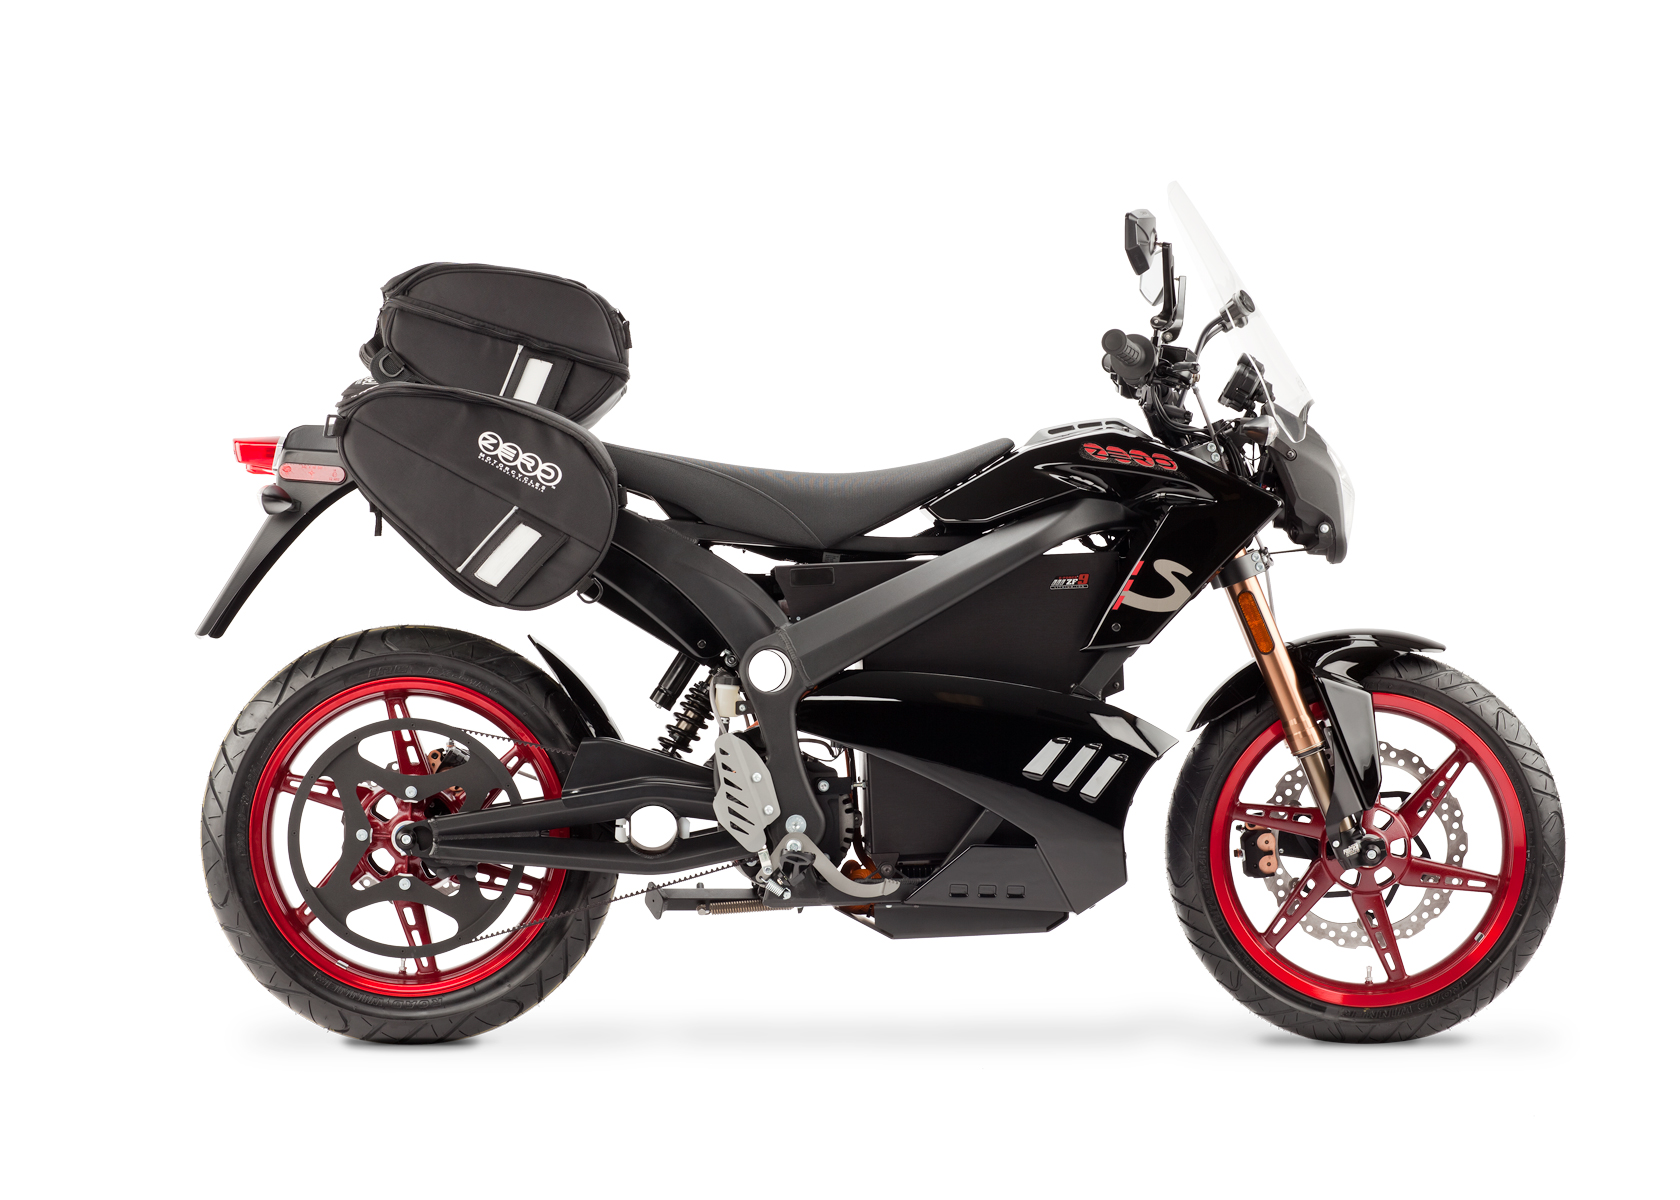 '.2012 Zero S Electric Motorcycle: Black Profile Right with Side Bags and Windscreen, White Background.'